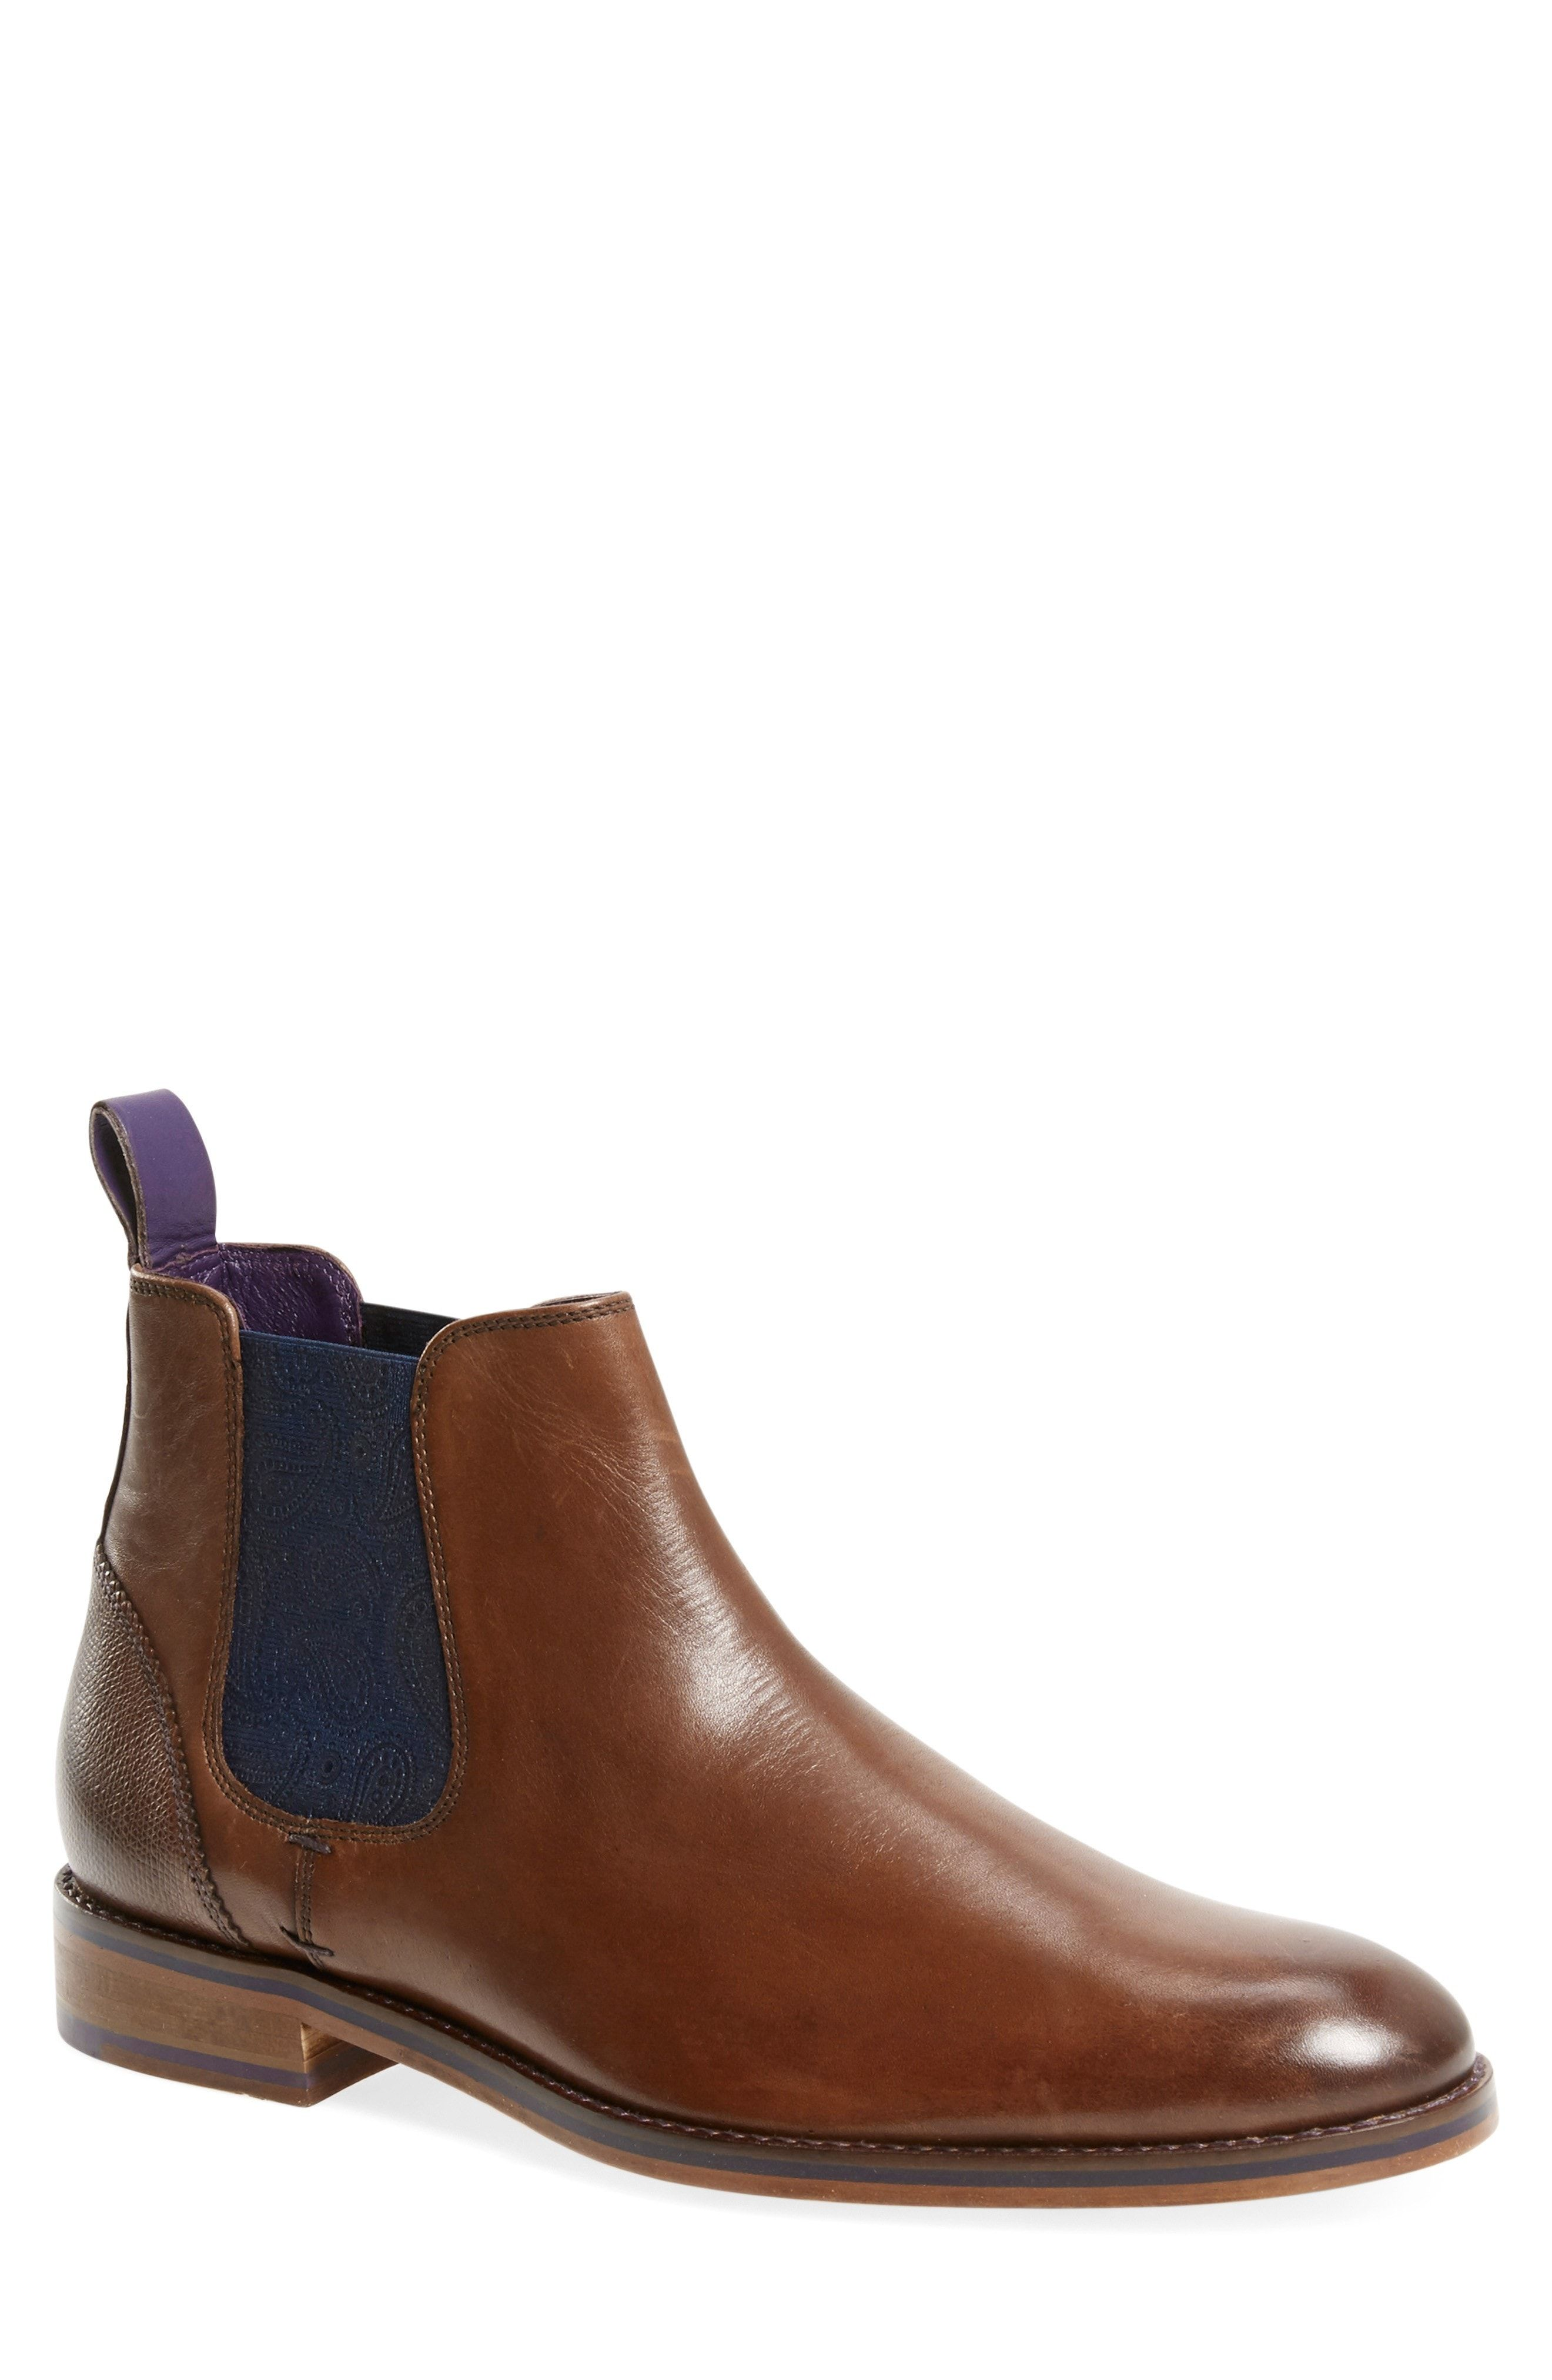 98568cc58 TED BAKER  CAMROON 4  CHELSEA BOOT.  tedbaker  shoes